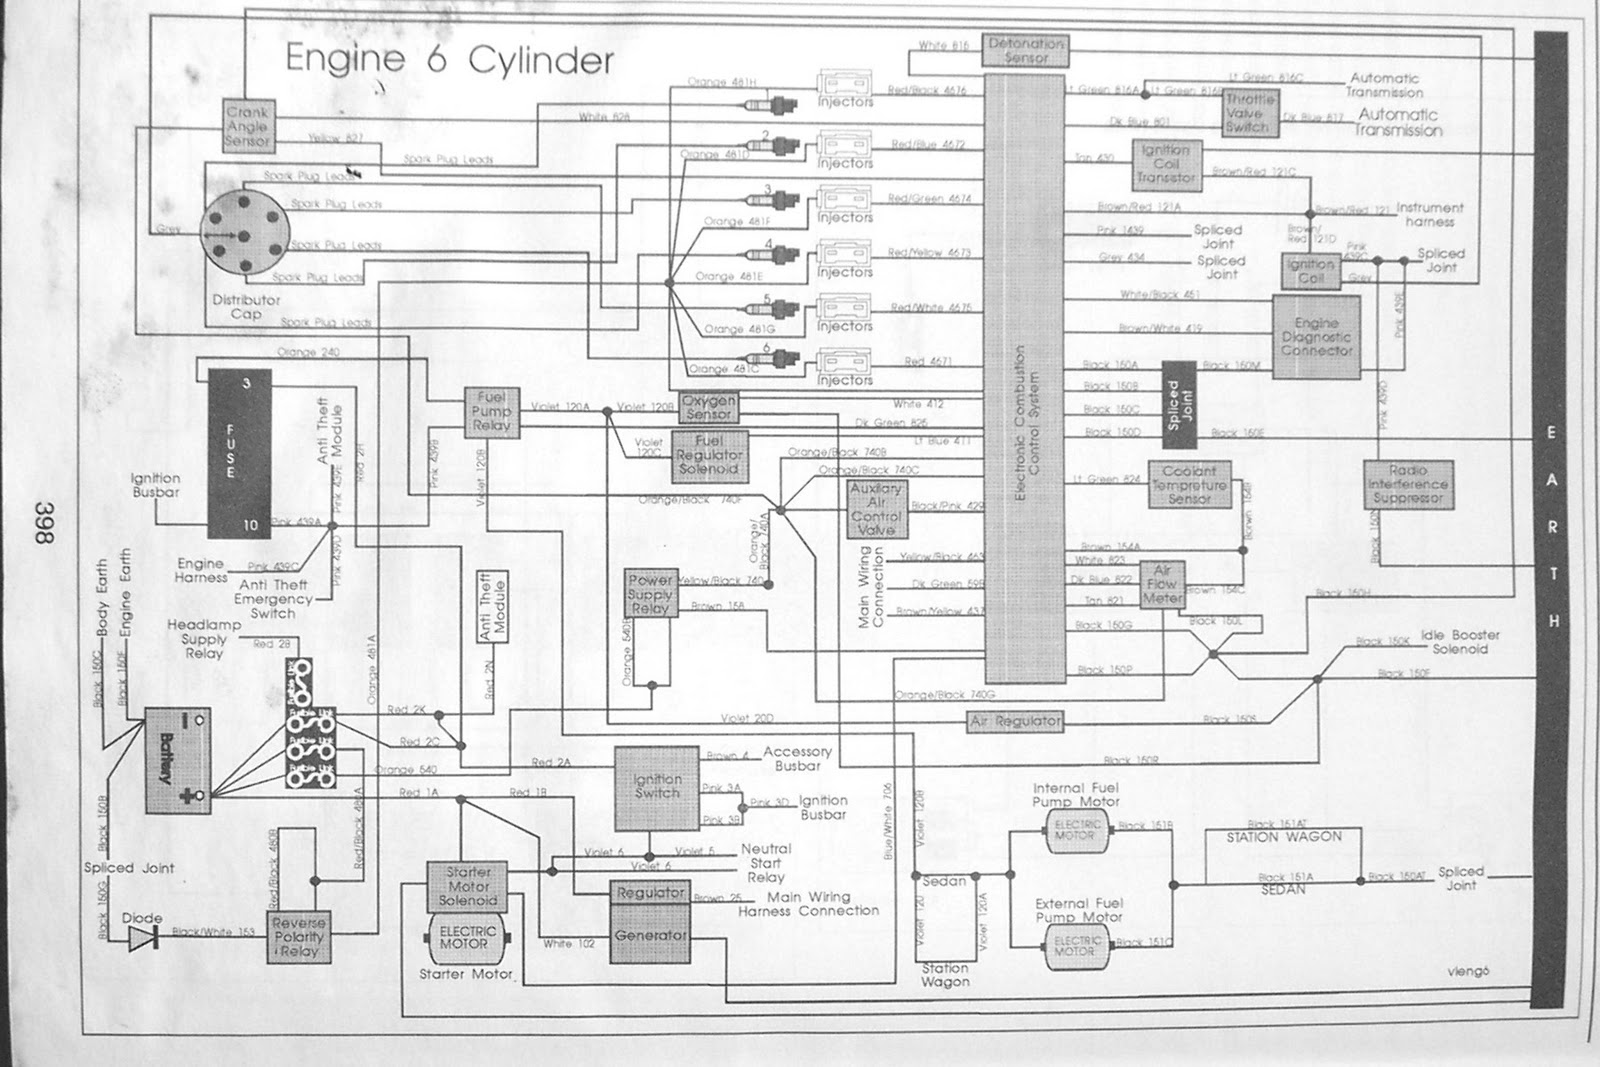 14b rb30 wiring diagrams 280zx project vl wiring diagram at panicattacktreatment.co